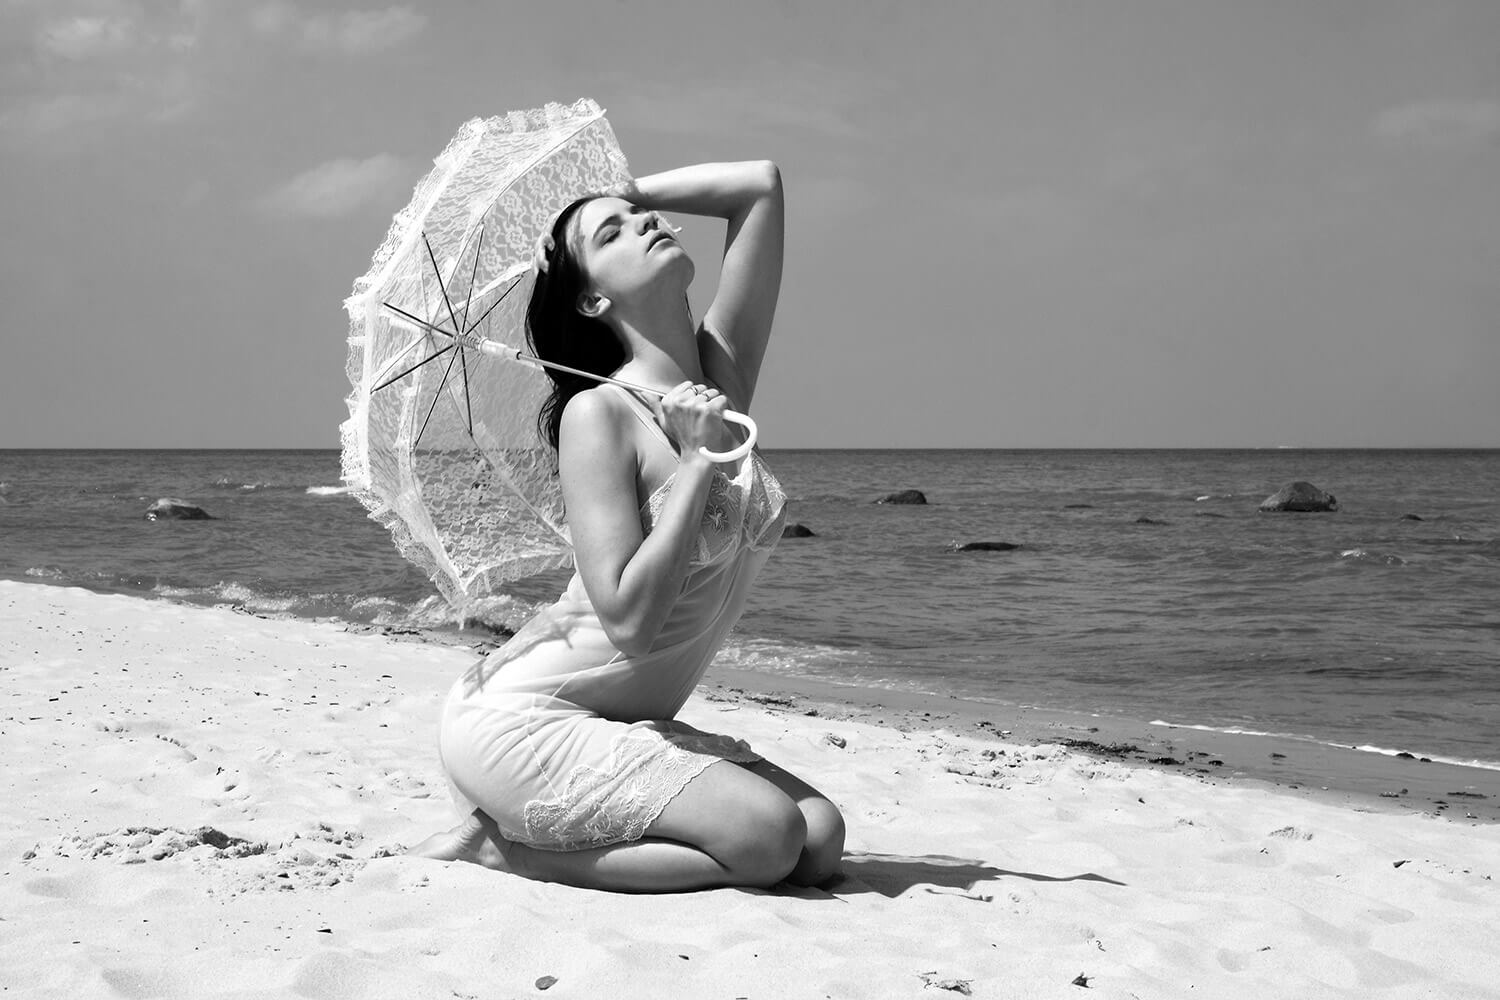 black and white fashion photo of a woman in a negligee and with an umbrella on the beach